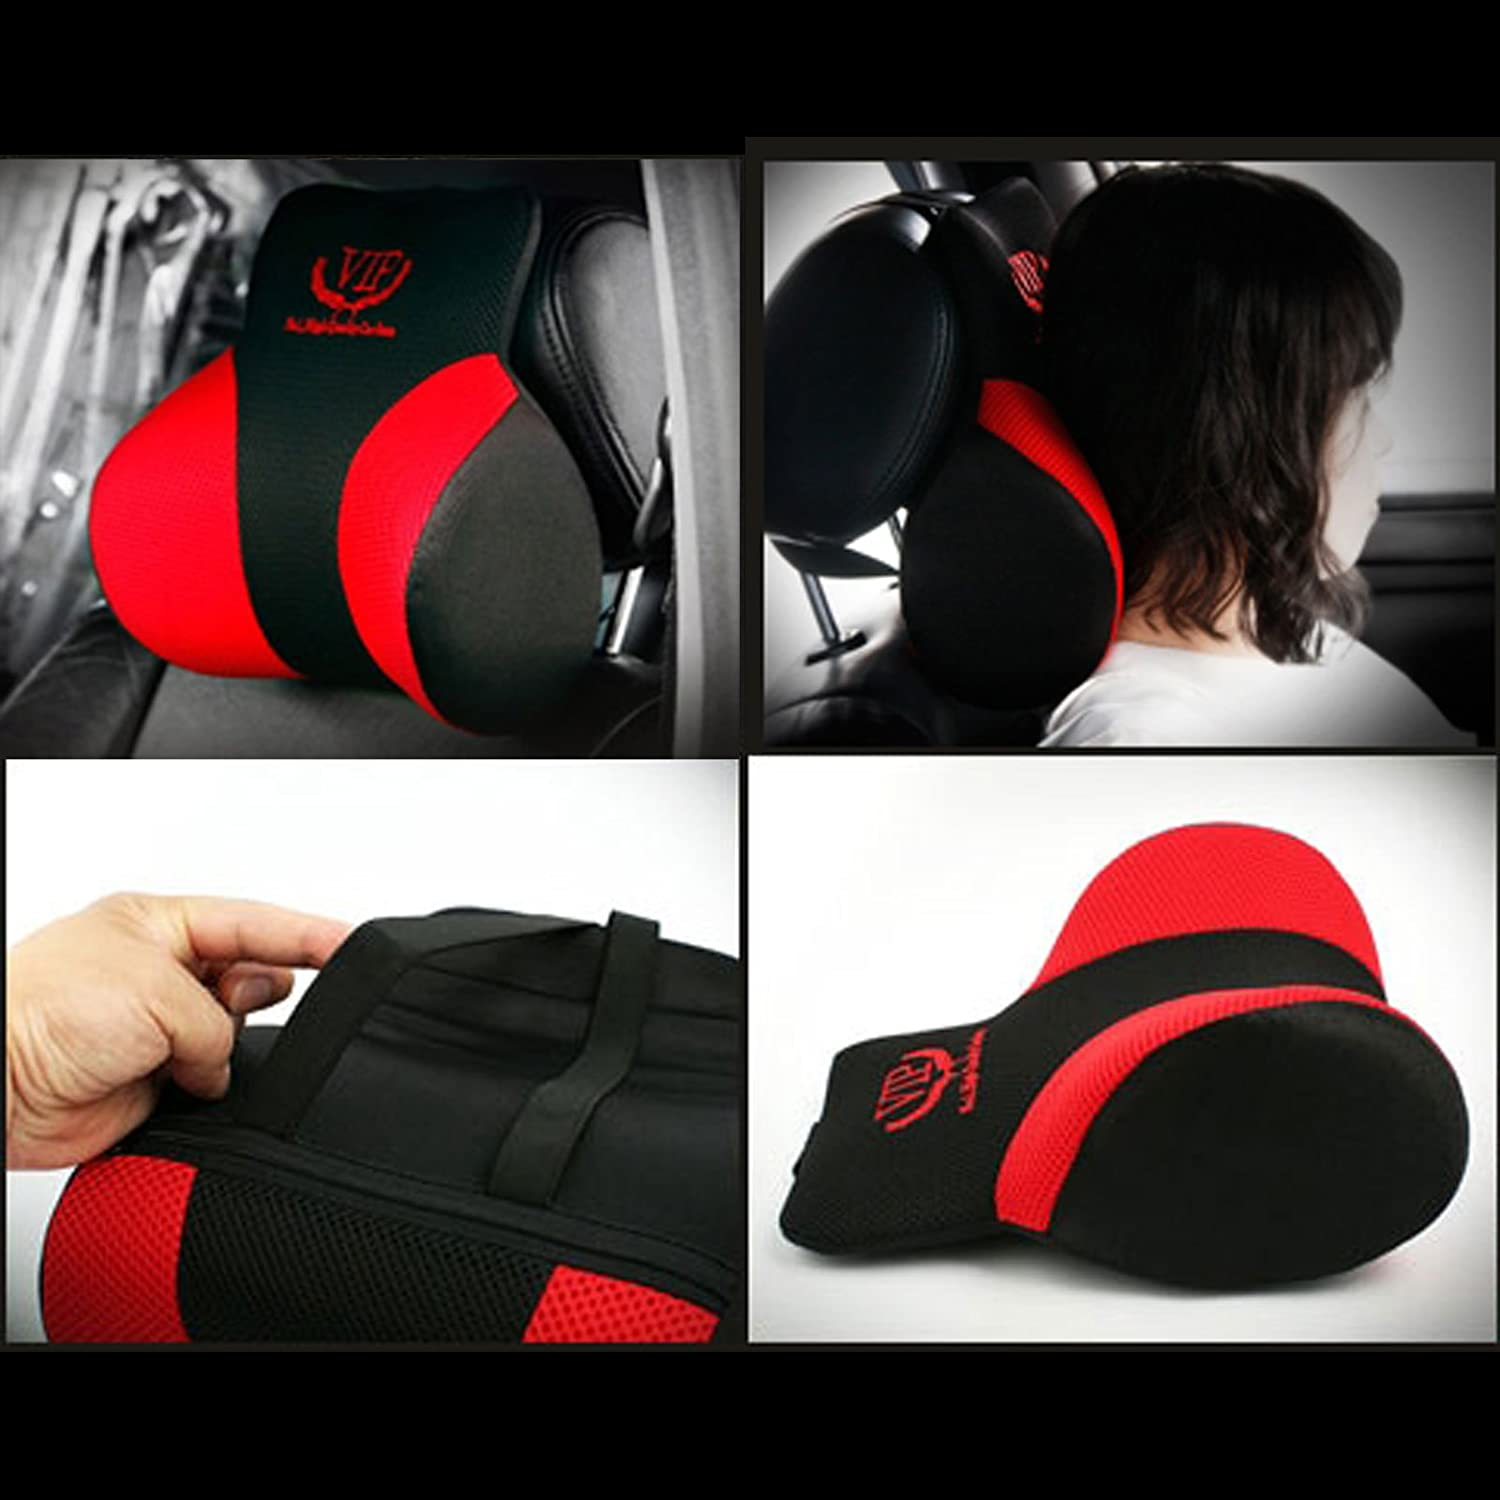 1pack VIP Luxury Black Memoryform Cushions Car Seat Head Neck Rest Cushion Headrest Pillow Pad for Car Motors Auto Vehicle